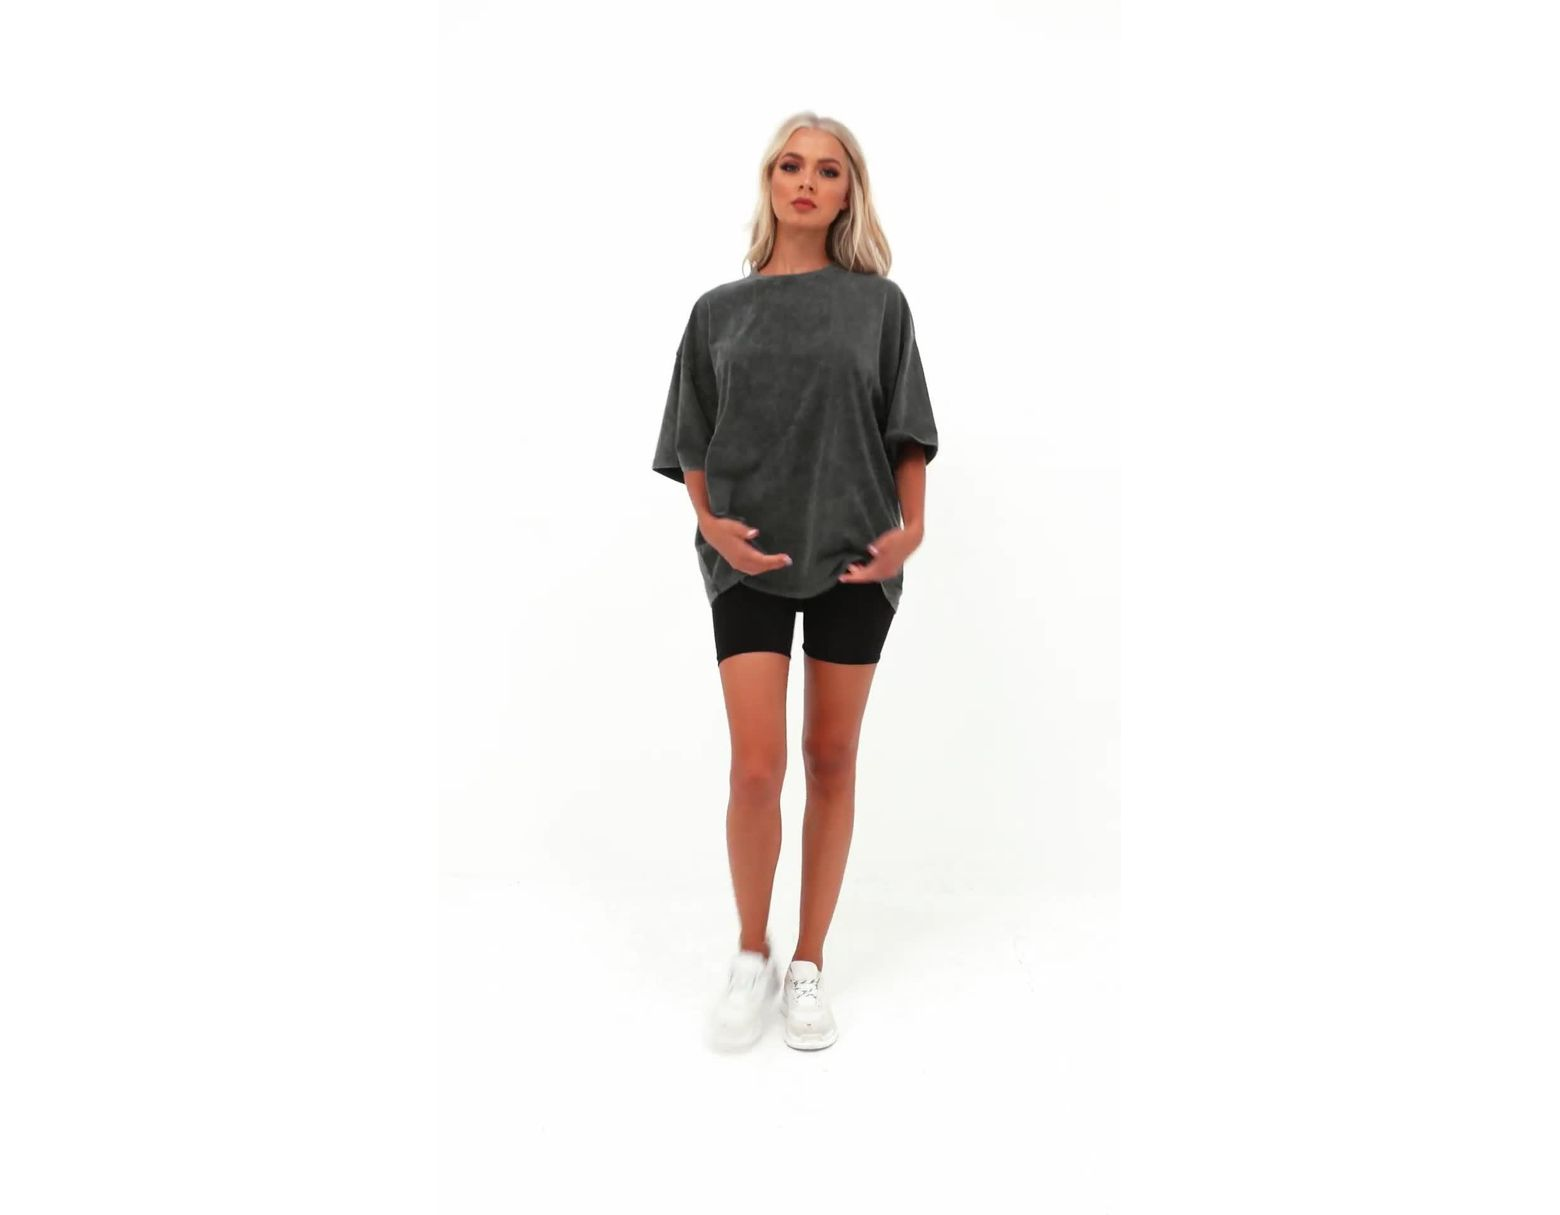 bf804a9e76274 Lyst - Missguided Grey Drop Shoulder Oversized Washed Top in Gray